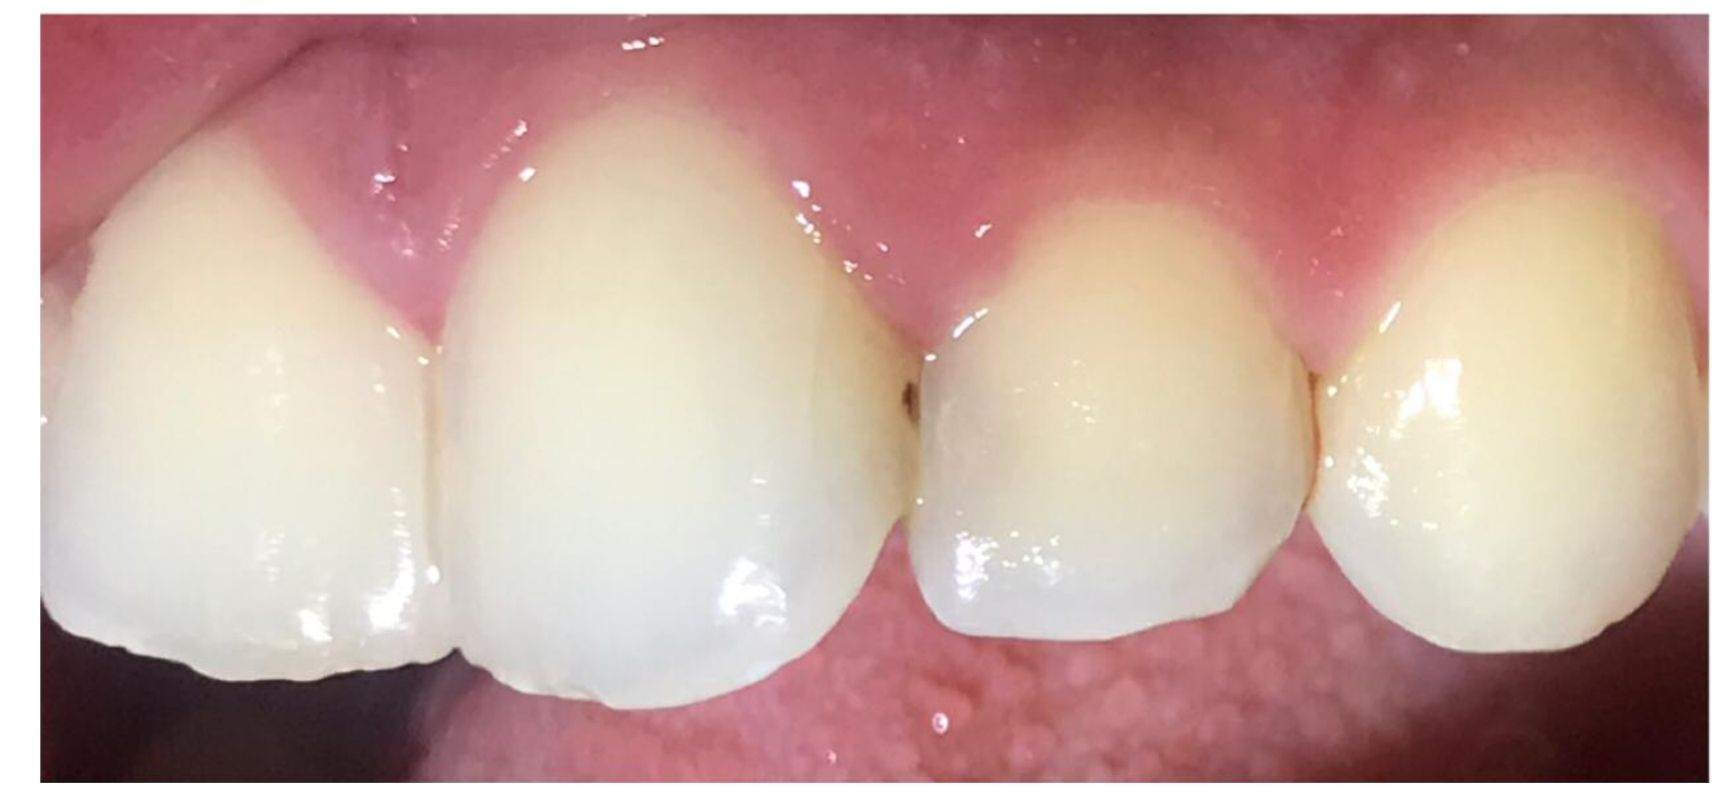 Before-Cosmetic fillings for the front teeth.